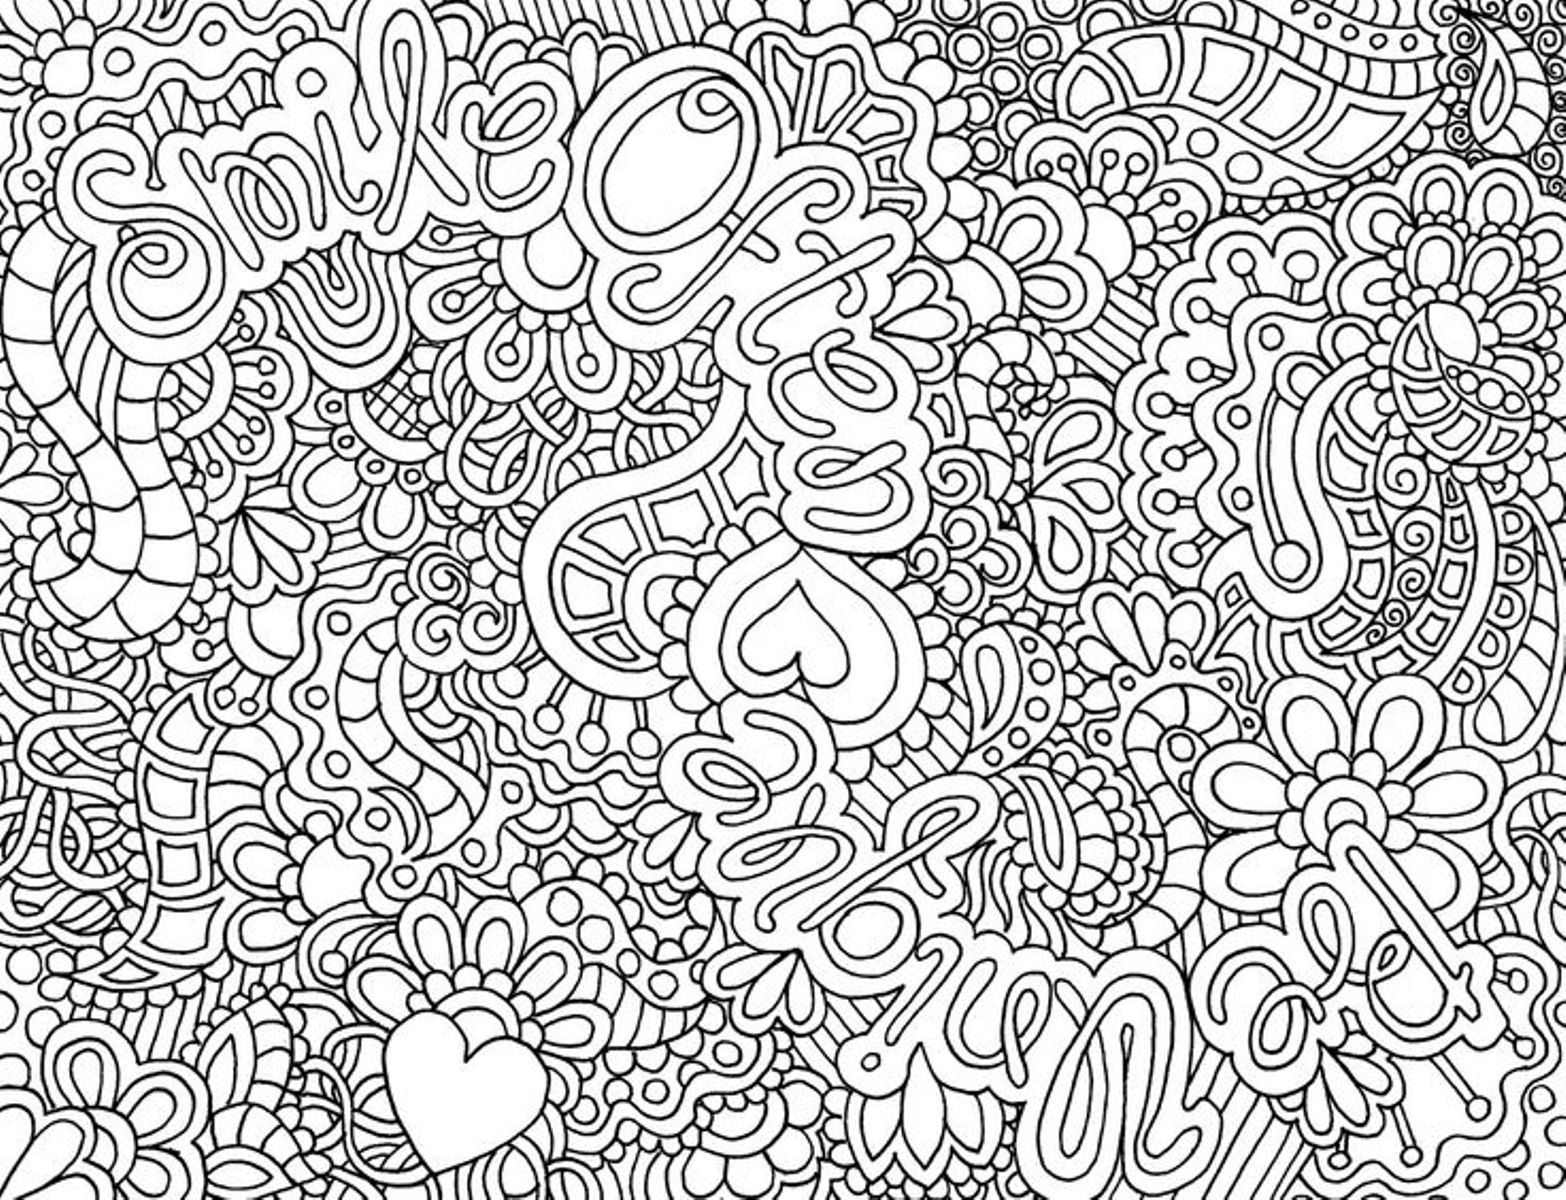 Difficult Coloring Pages for Teens